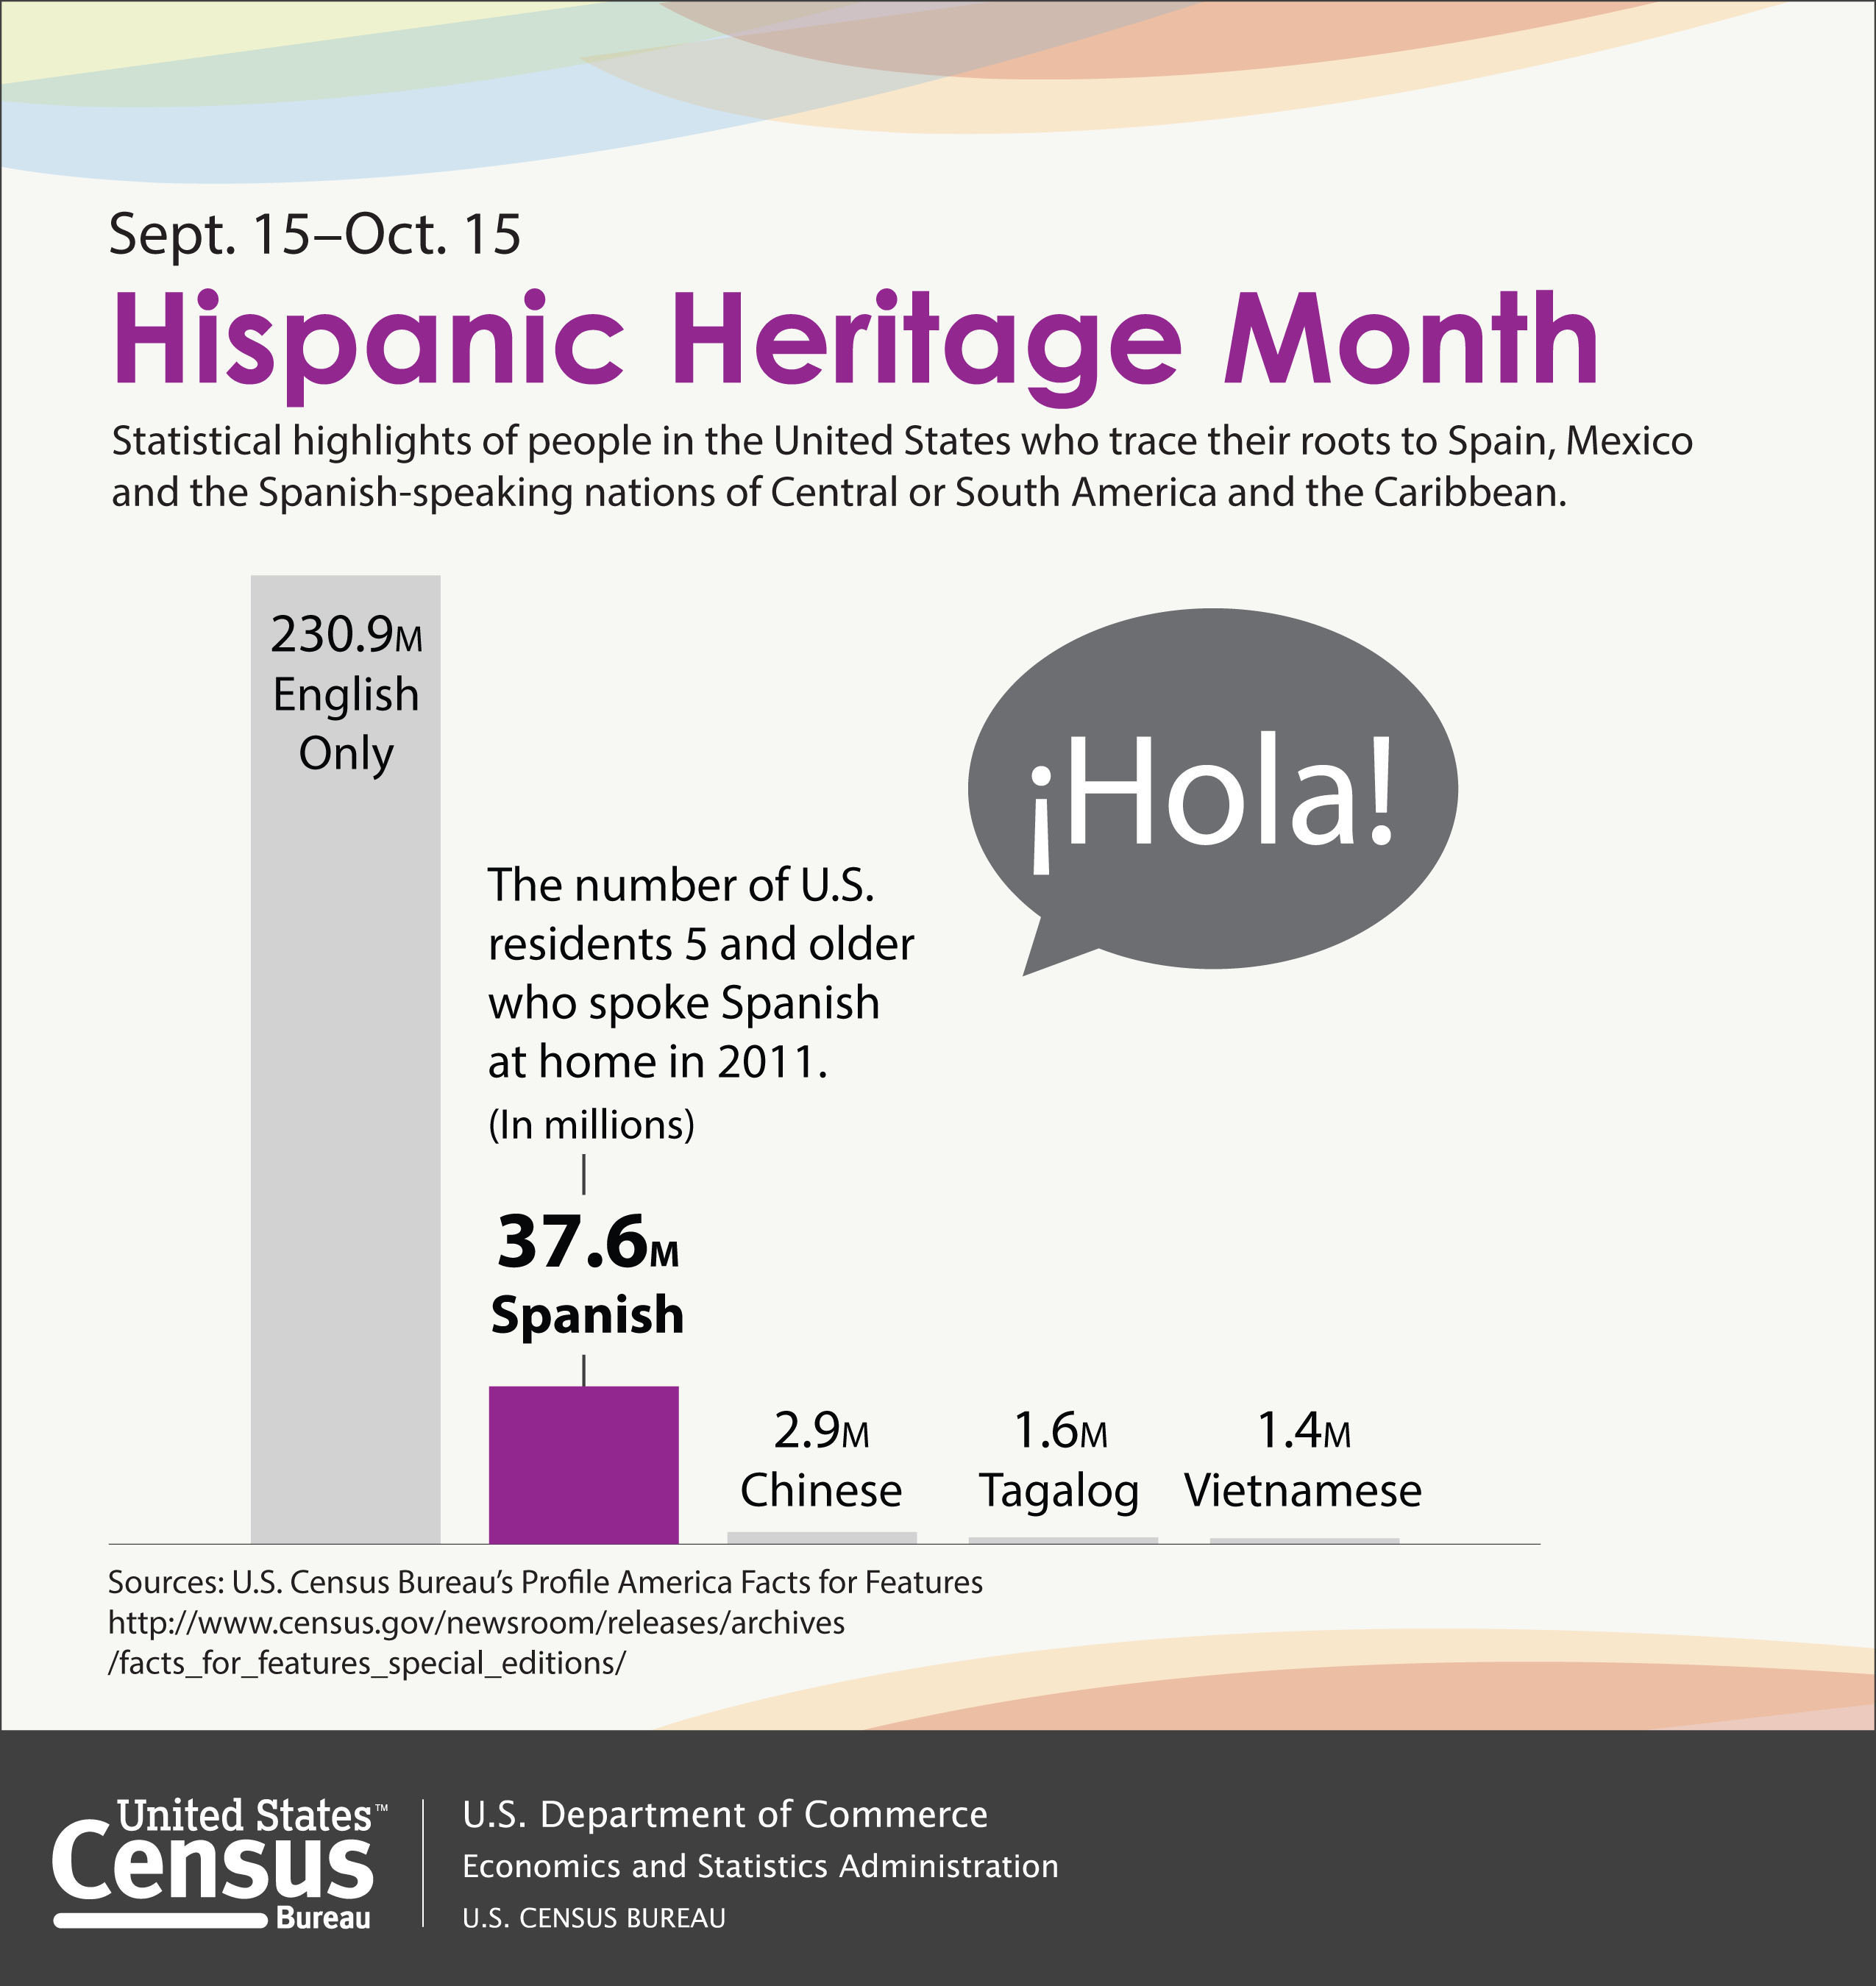 """The number of U.S. residents 5 and older who spoke Spanish at home was 37.6 million in 2011. This is a 117 percent increase since 1990 when it was 17.3 million. Those who hablan espanol en casa constituted 12.9 percent of U.S. residents 5 and older. More than half of these Spanish speakers spoke English """"very well."""" More: http://www.census.gov/newsroom/releases/archives/facts_for_features_special_editions/cb13-ff19.html. (PRNewsFoto/U.S. Census Bureau) (PRNewsFoto/U.S. CENSUS BUREAU)"""